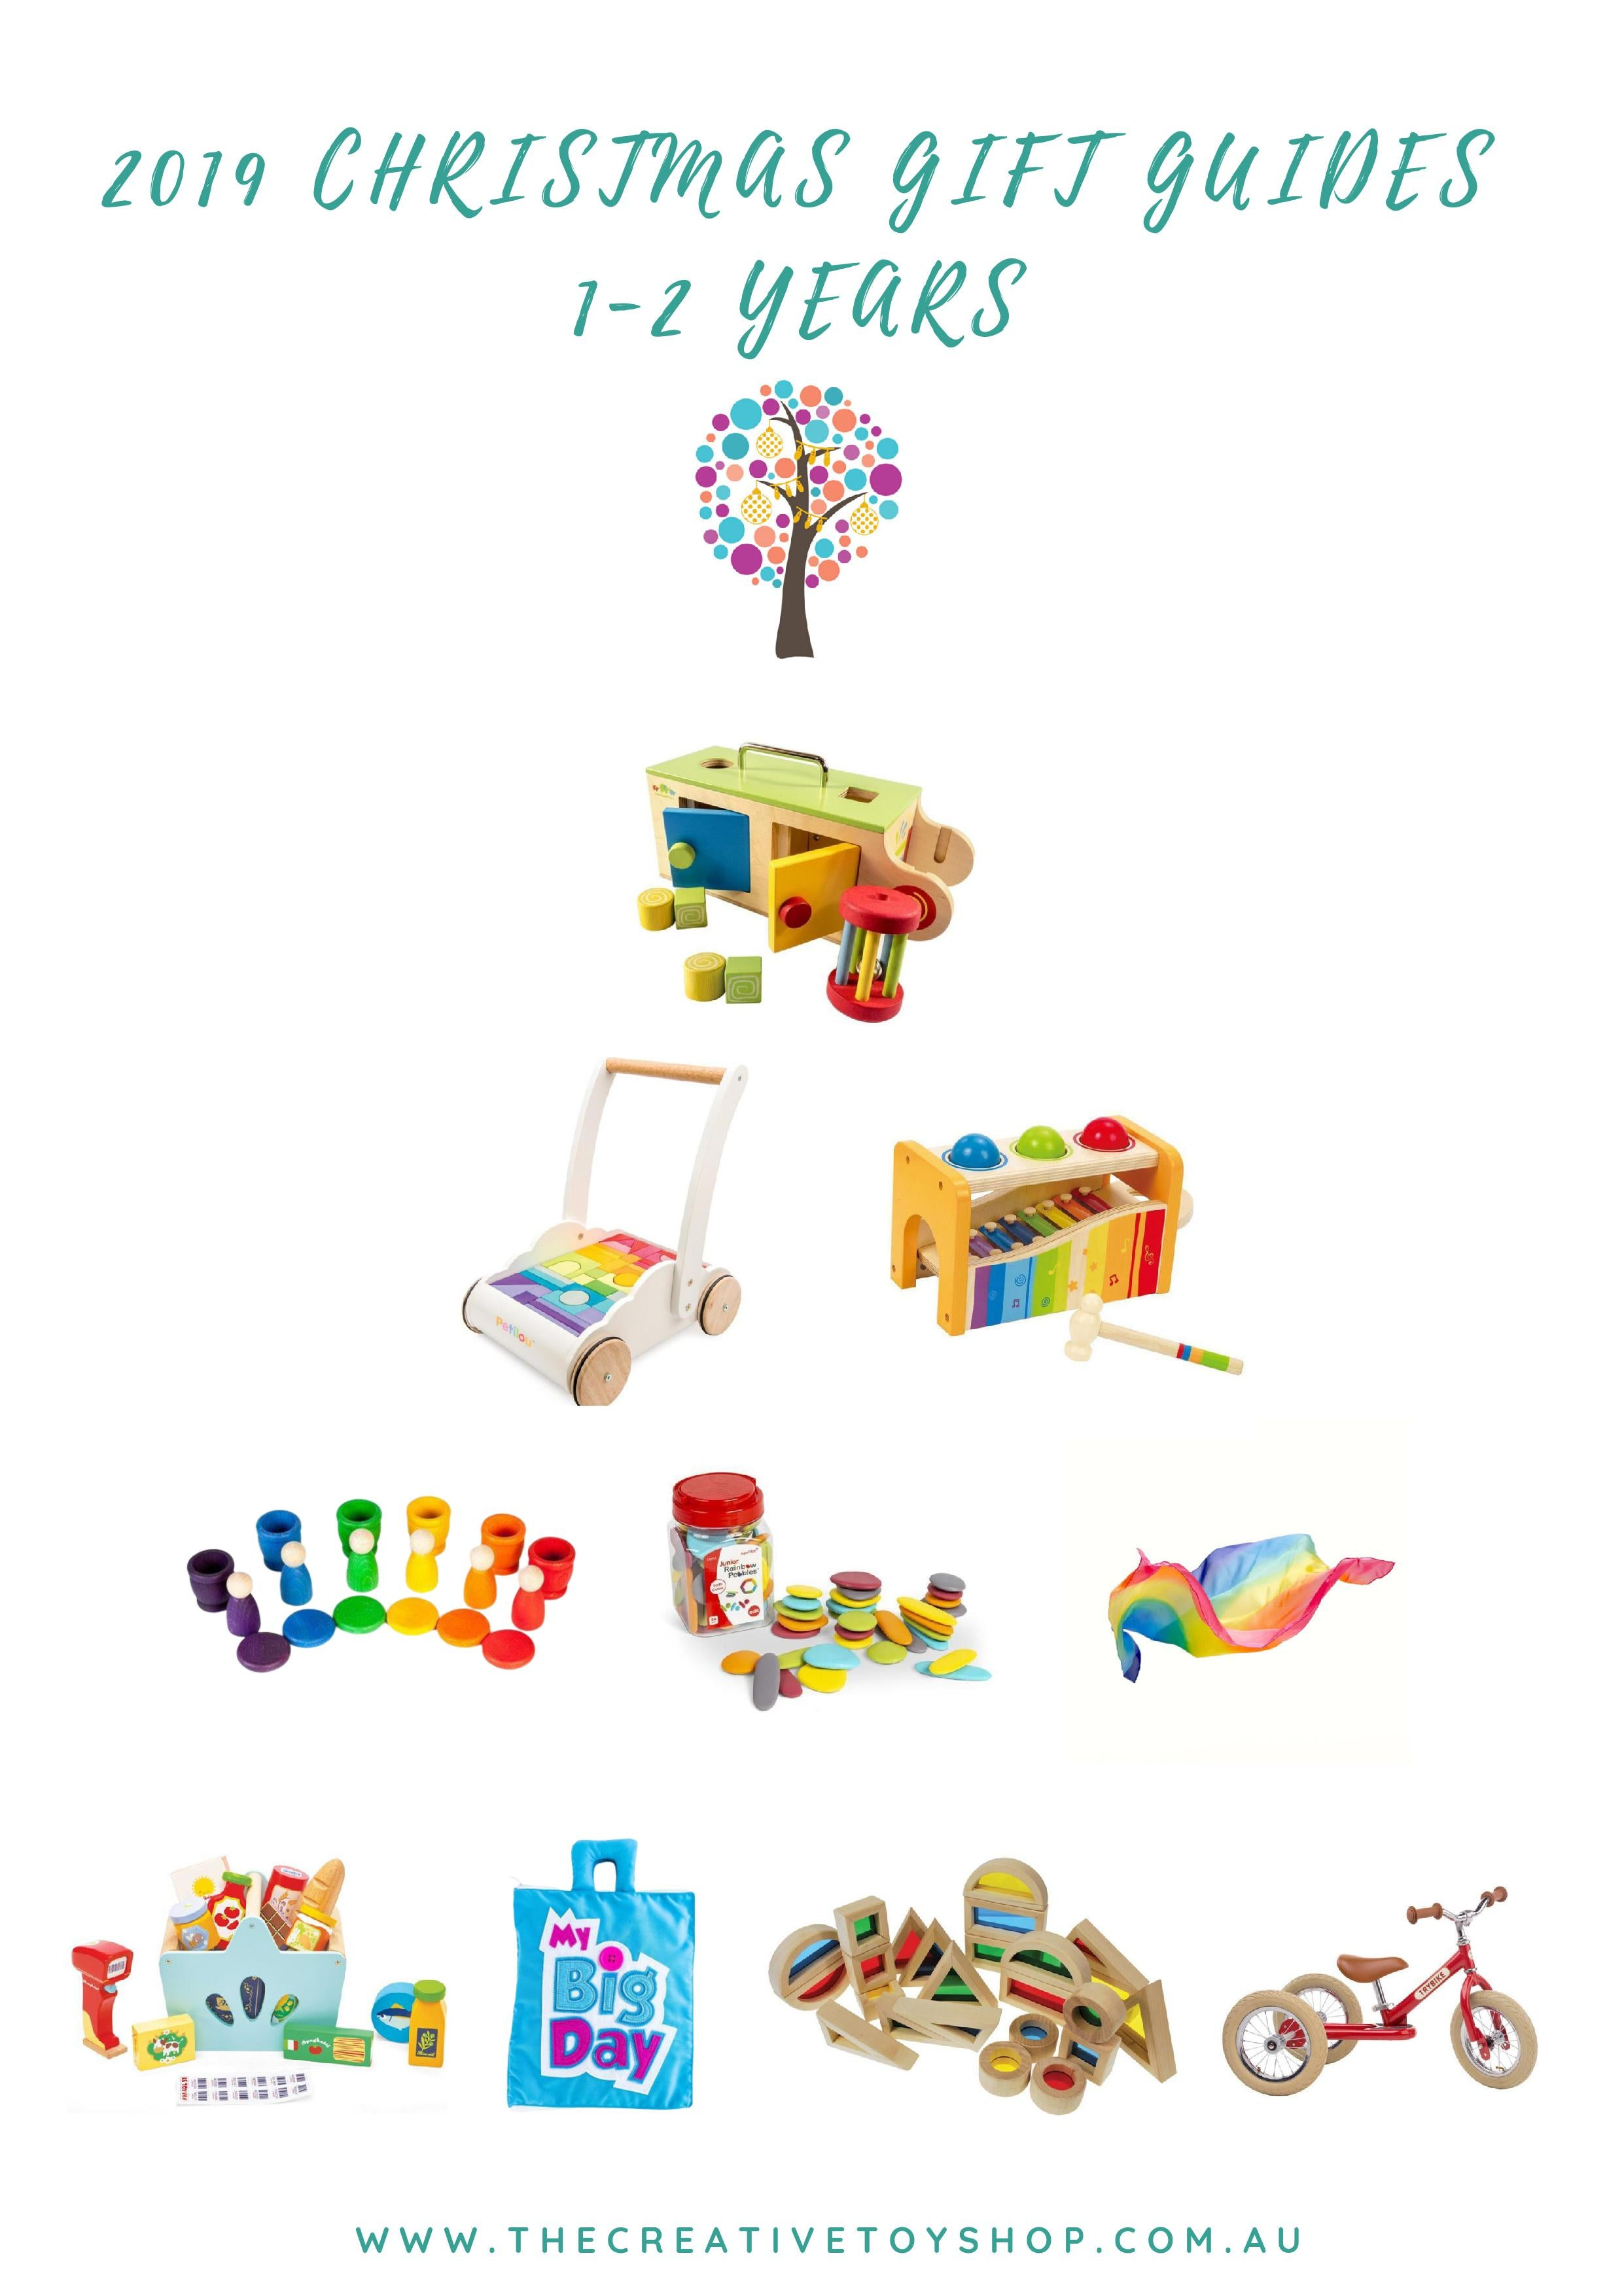 The Creative Toy Shop 2019 Christmas Gift Guide 1-2 years